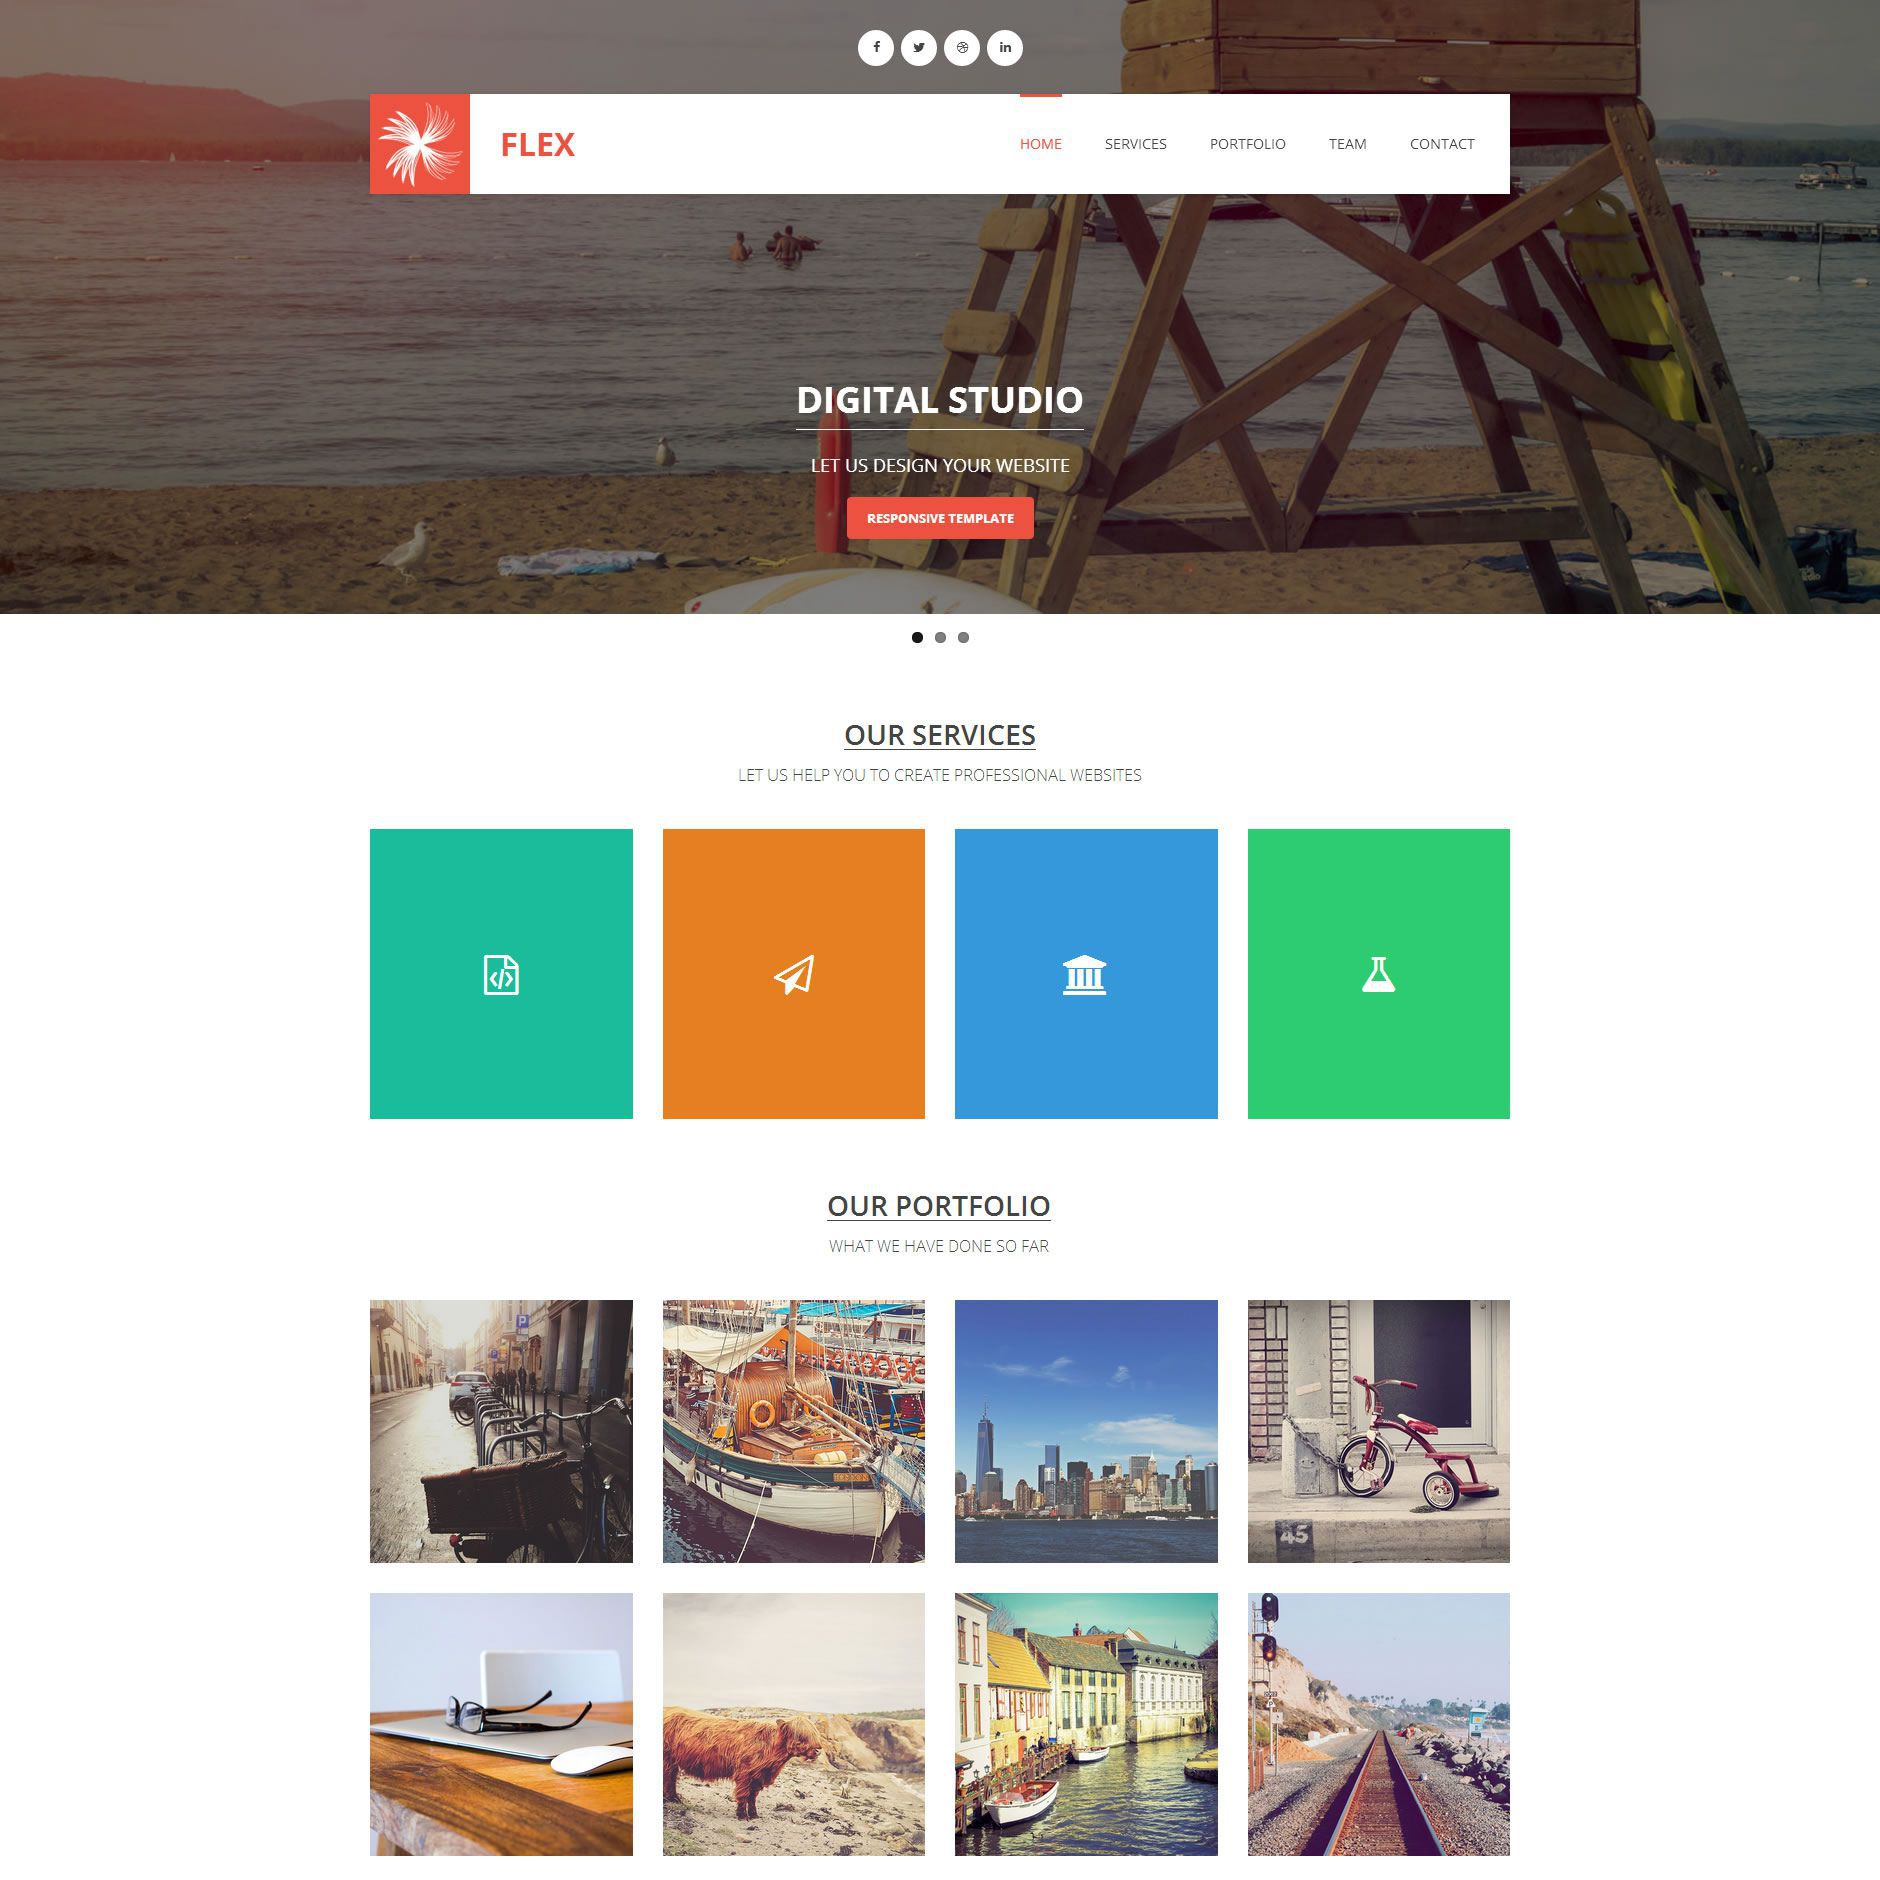 009 Remarkable Free Download Responsive Html Template With Slider Image Full